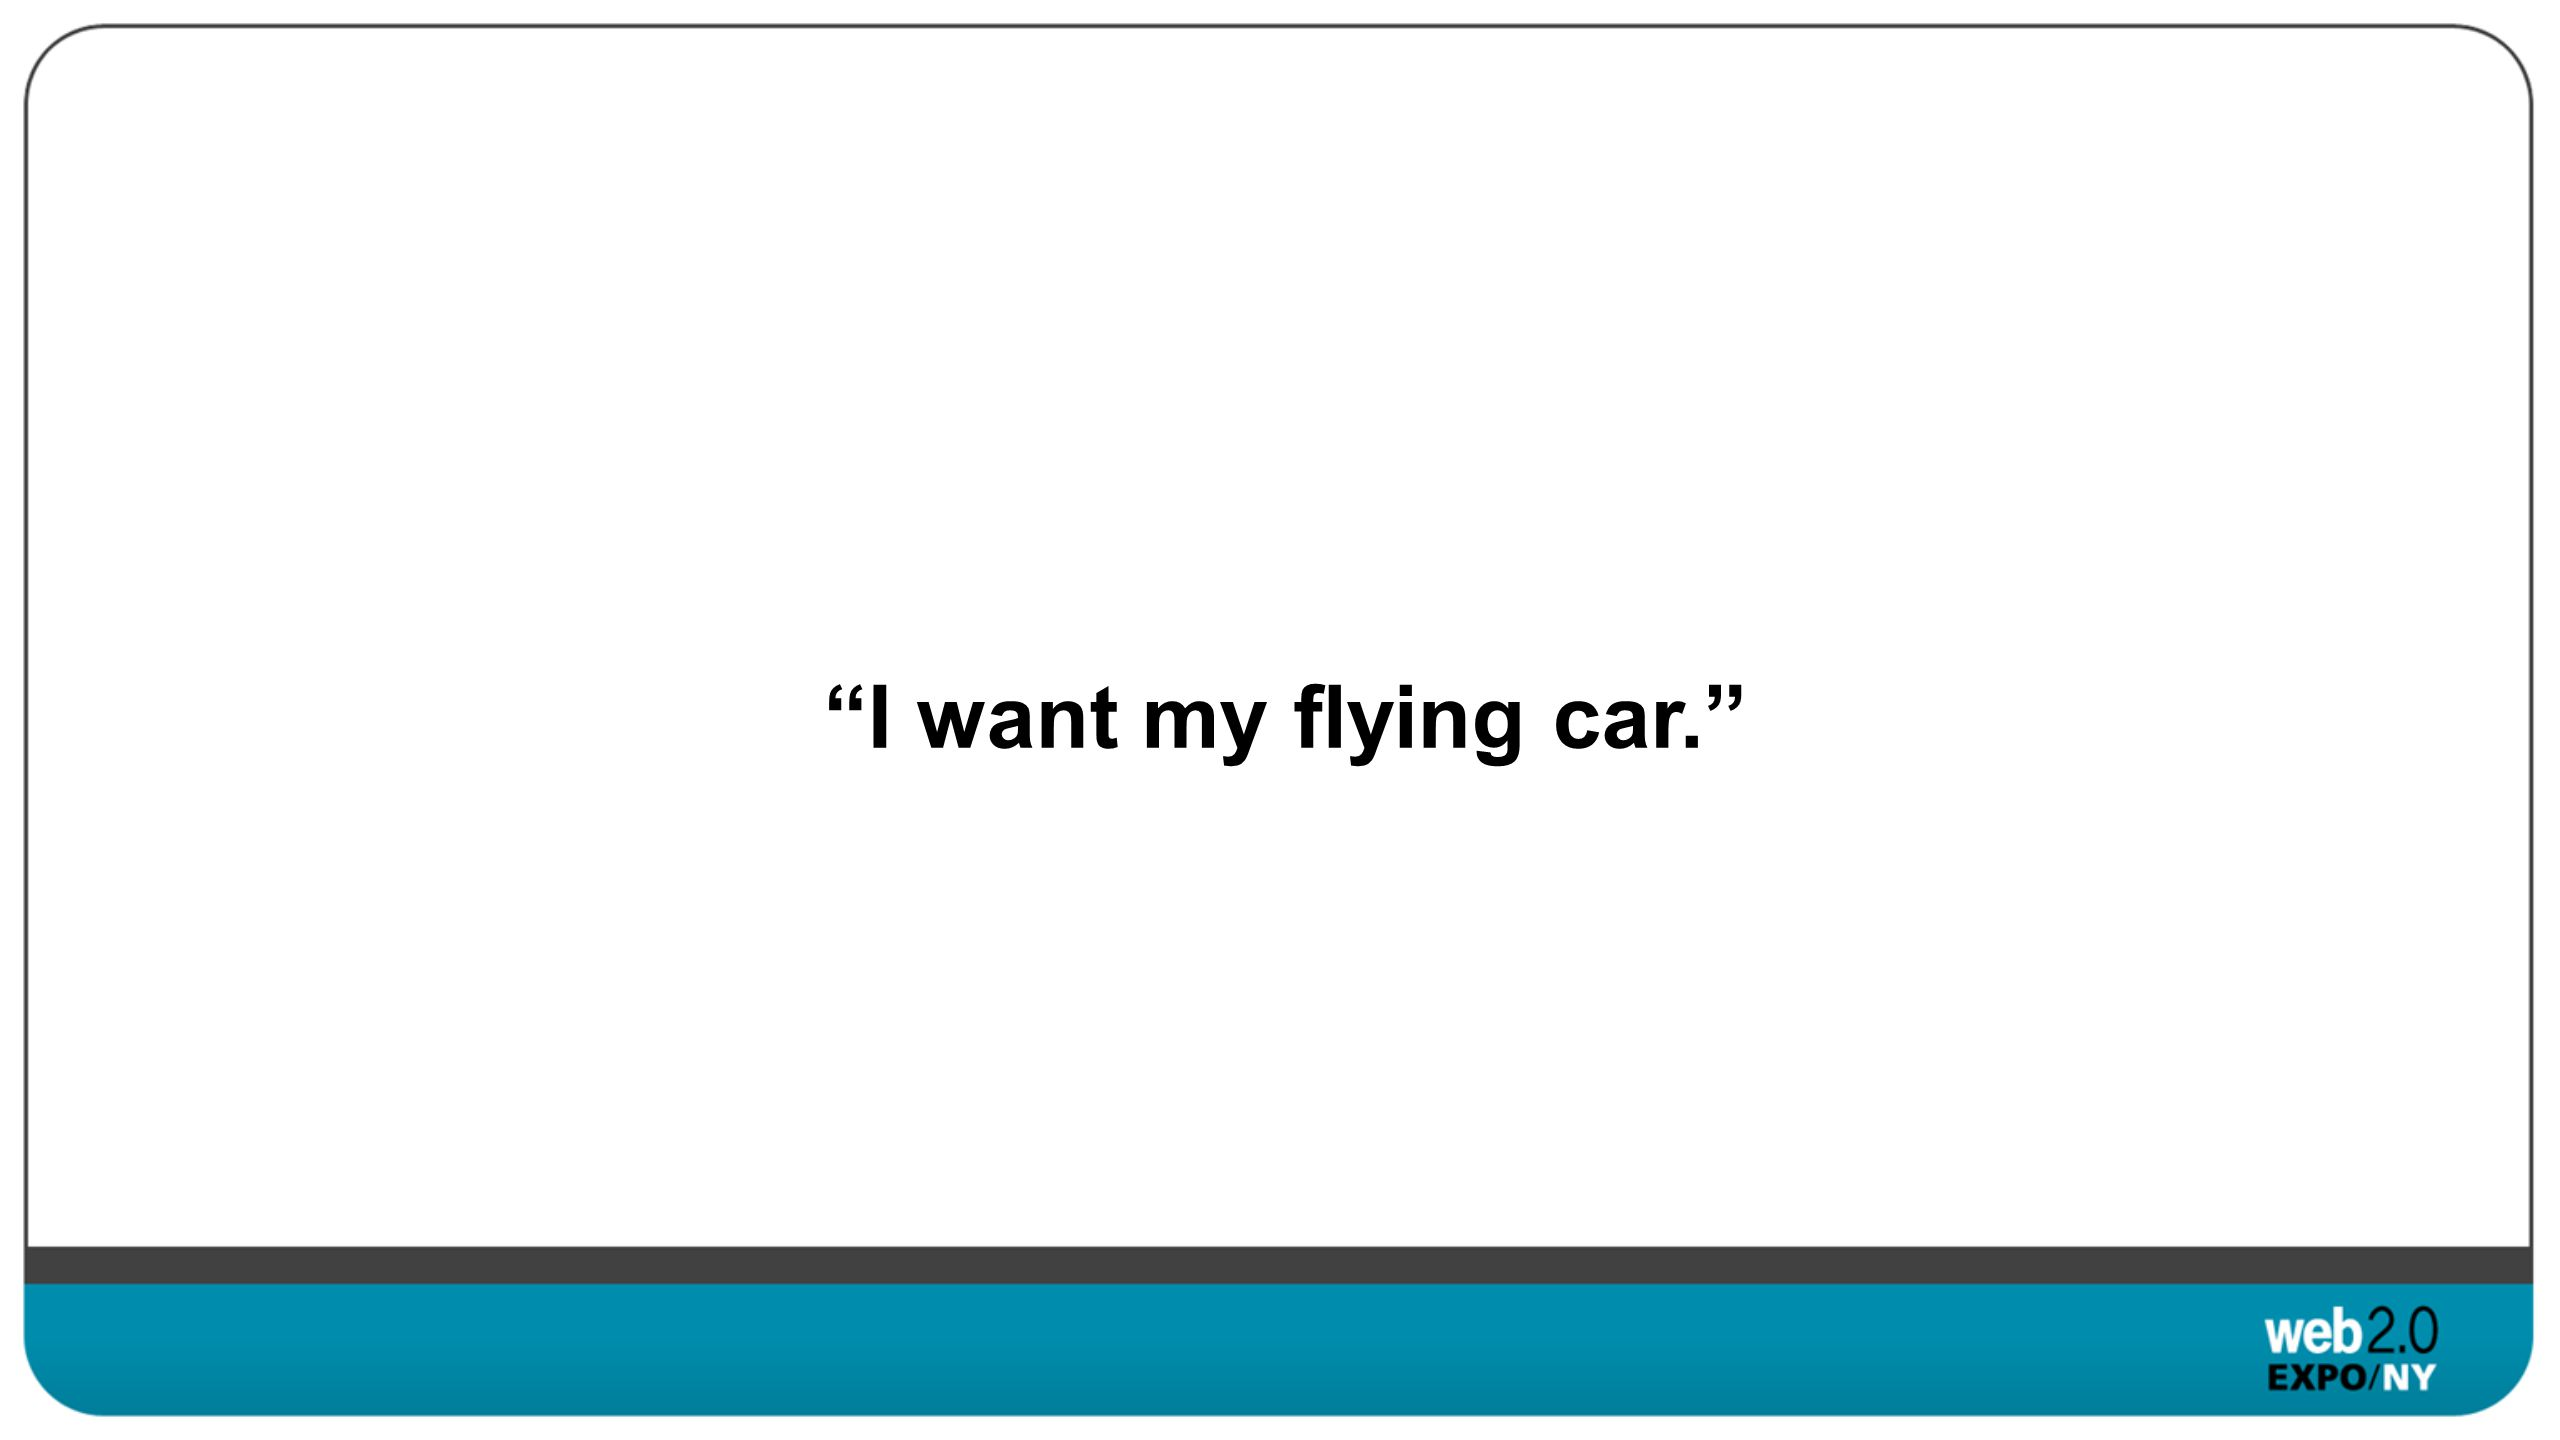 I want my flying car.